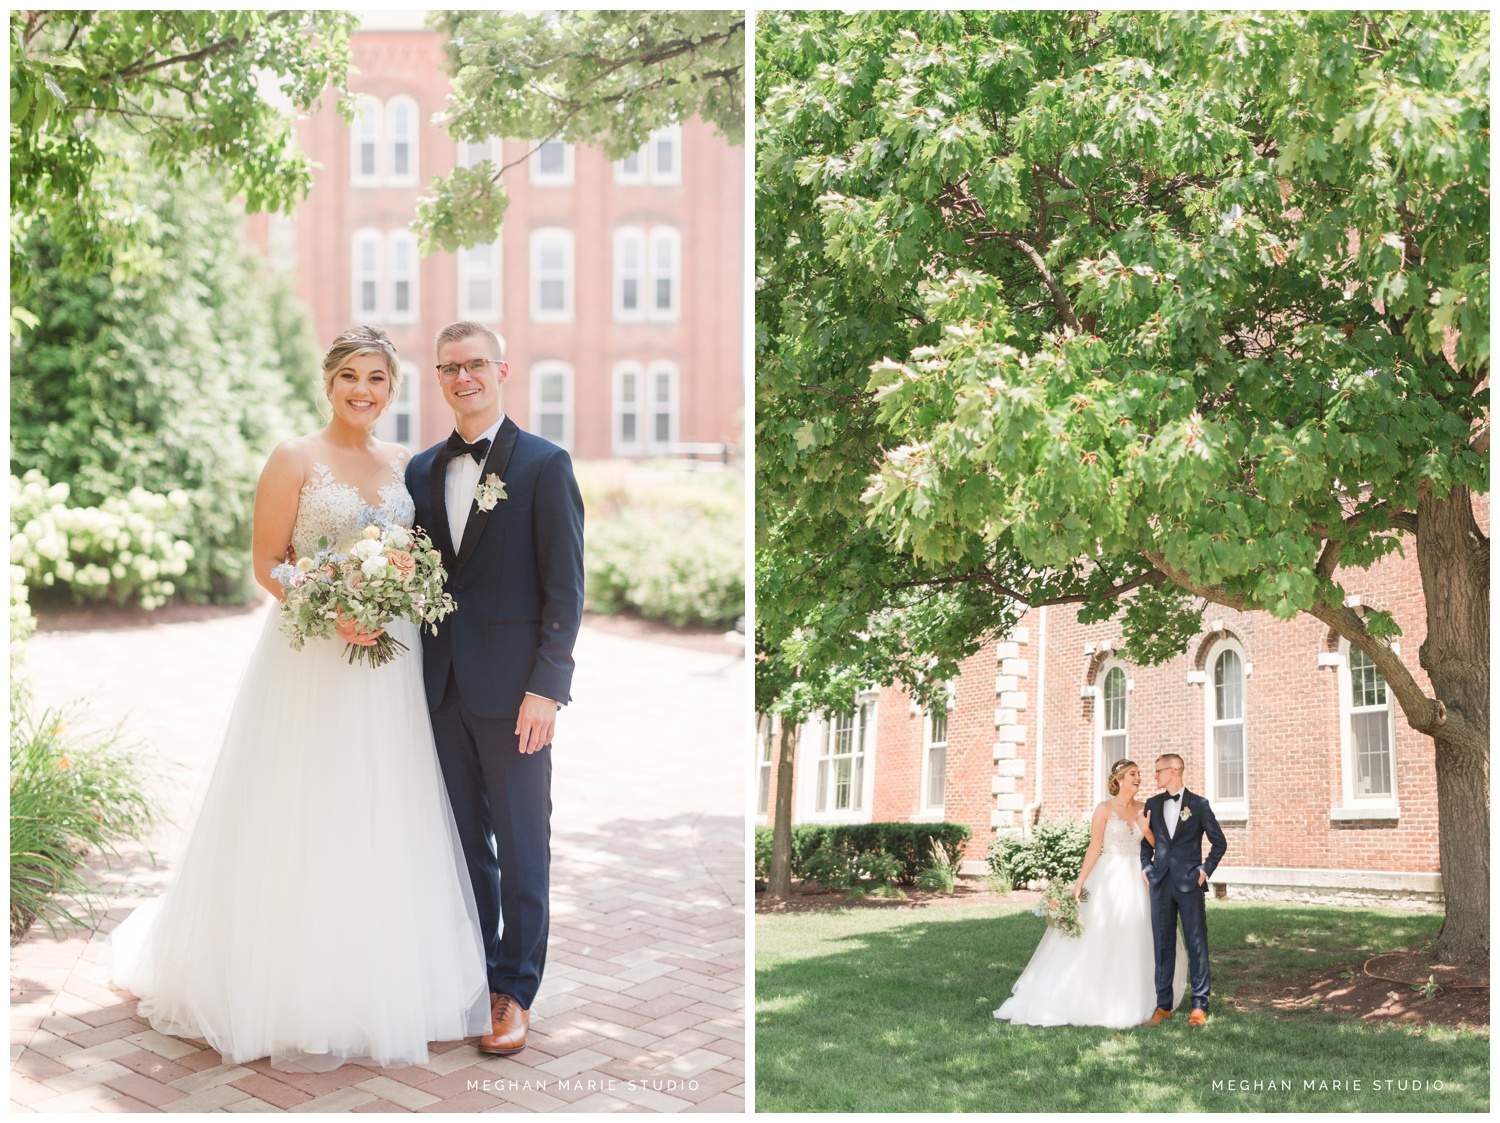 meghan marie studio university of dayton cathedral wedding with romantic earth tone donuts and decor steam plant ohio wedding_0288.jpg